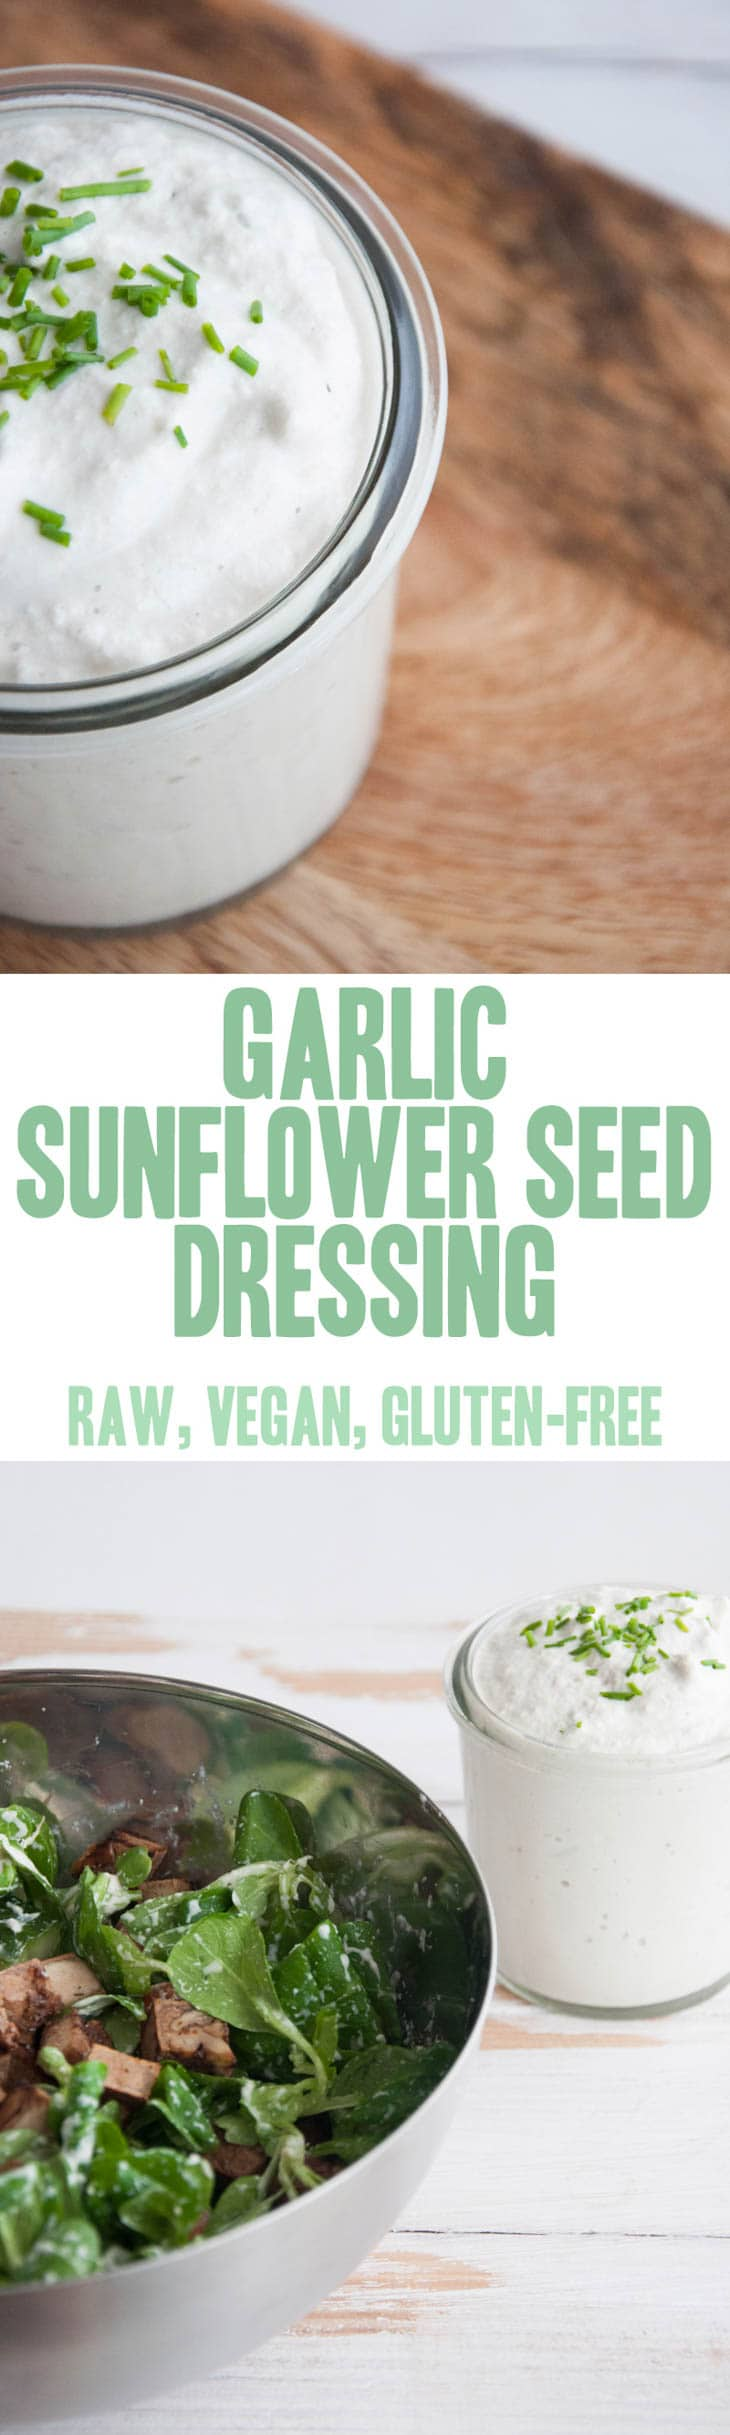 Garlic Sunflower Seed Dressing | ElephantasticVegan.com